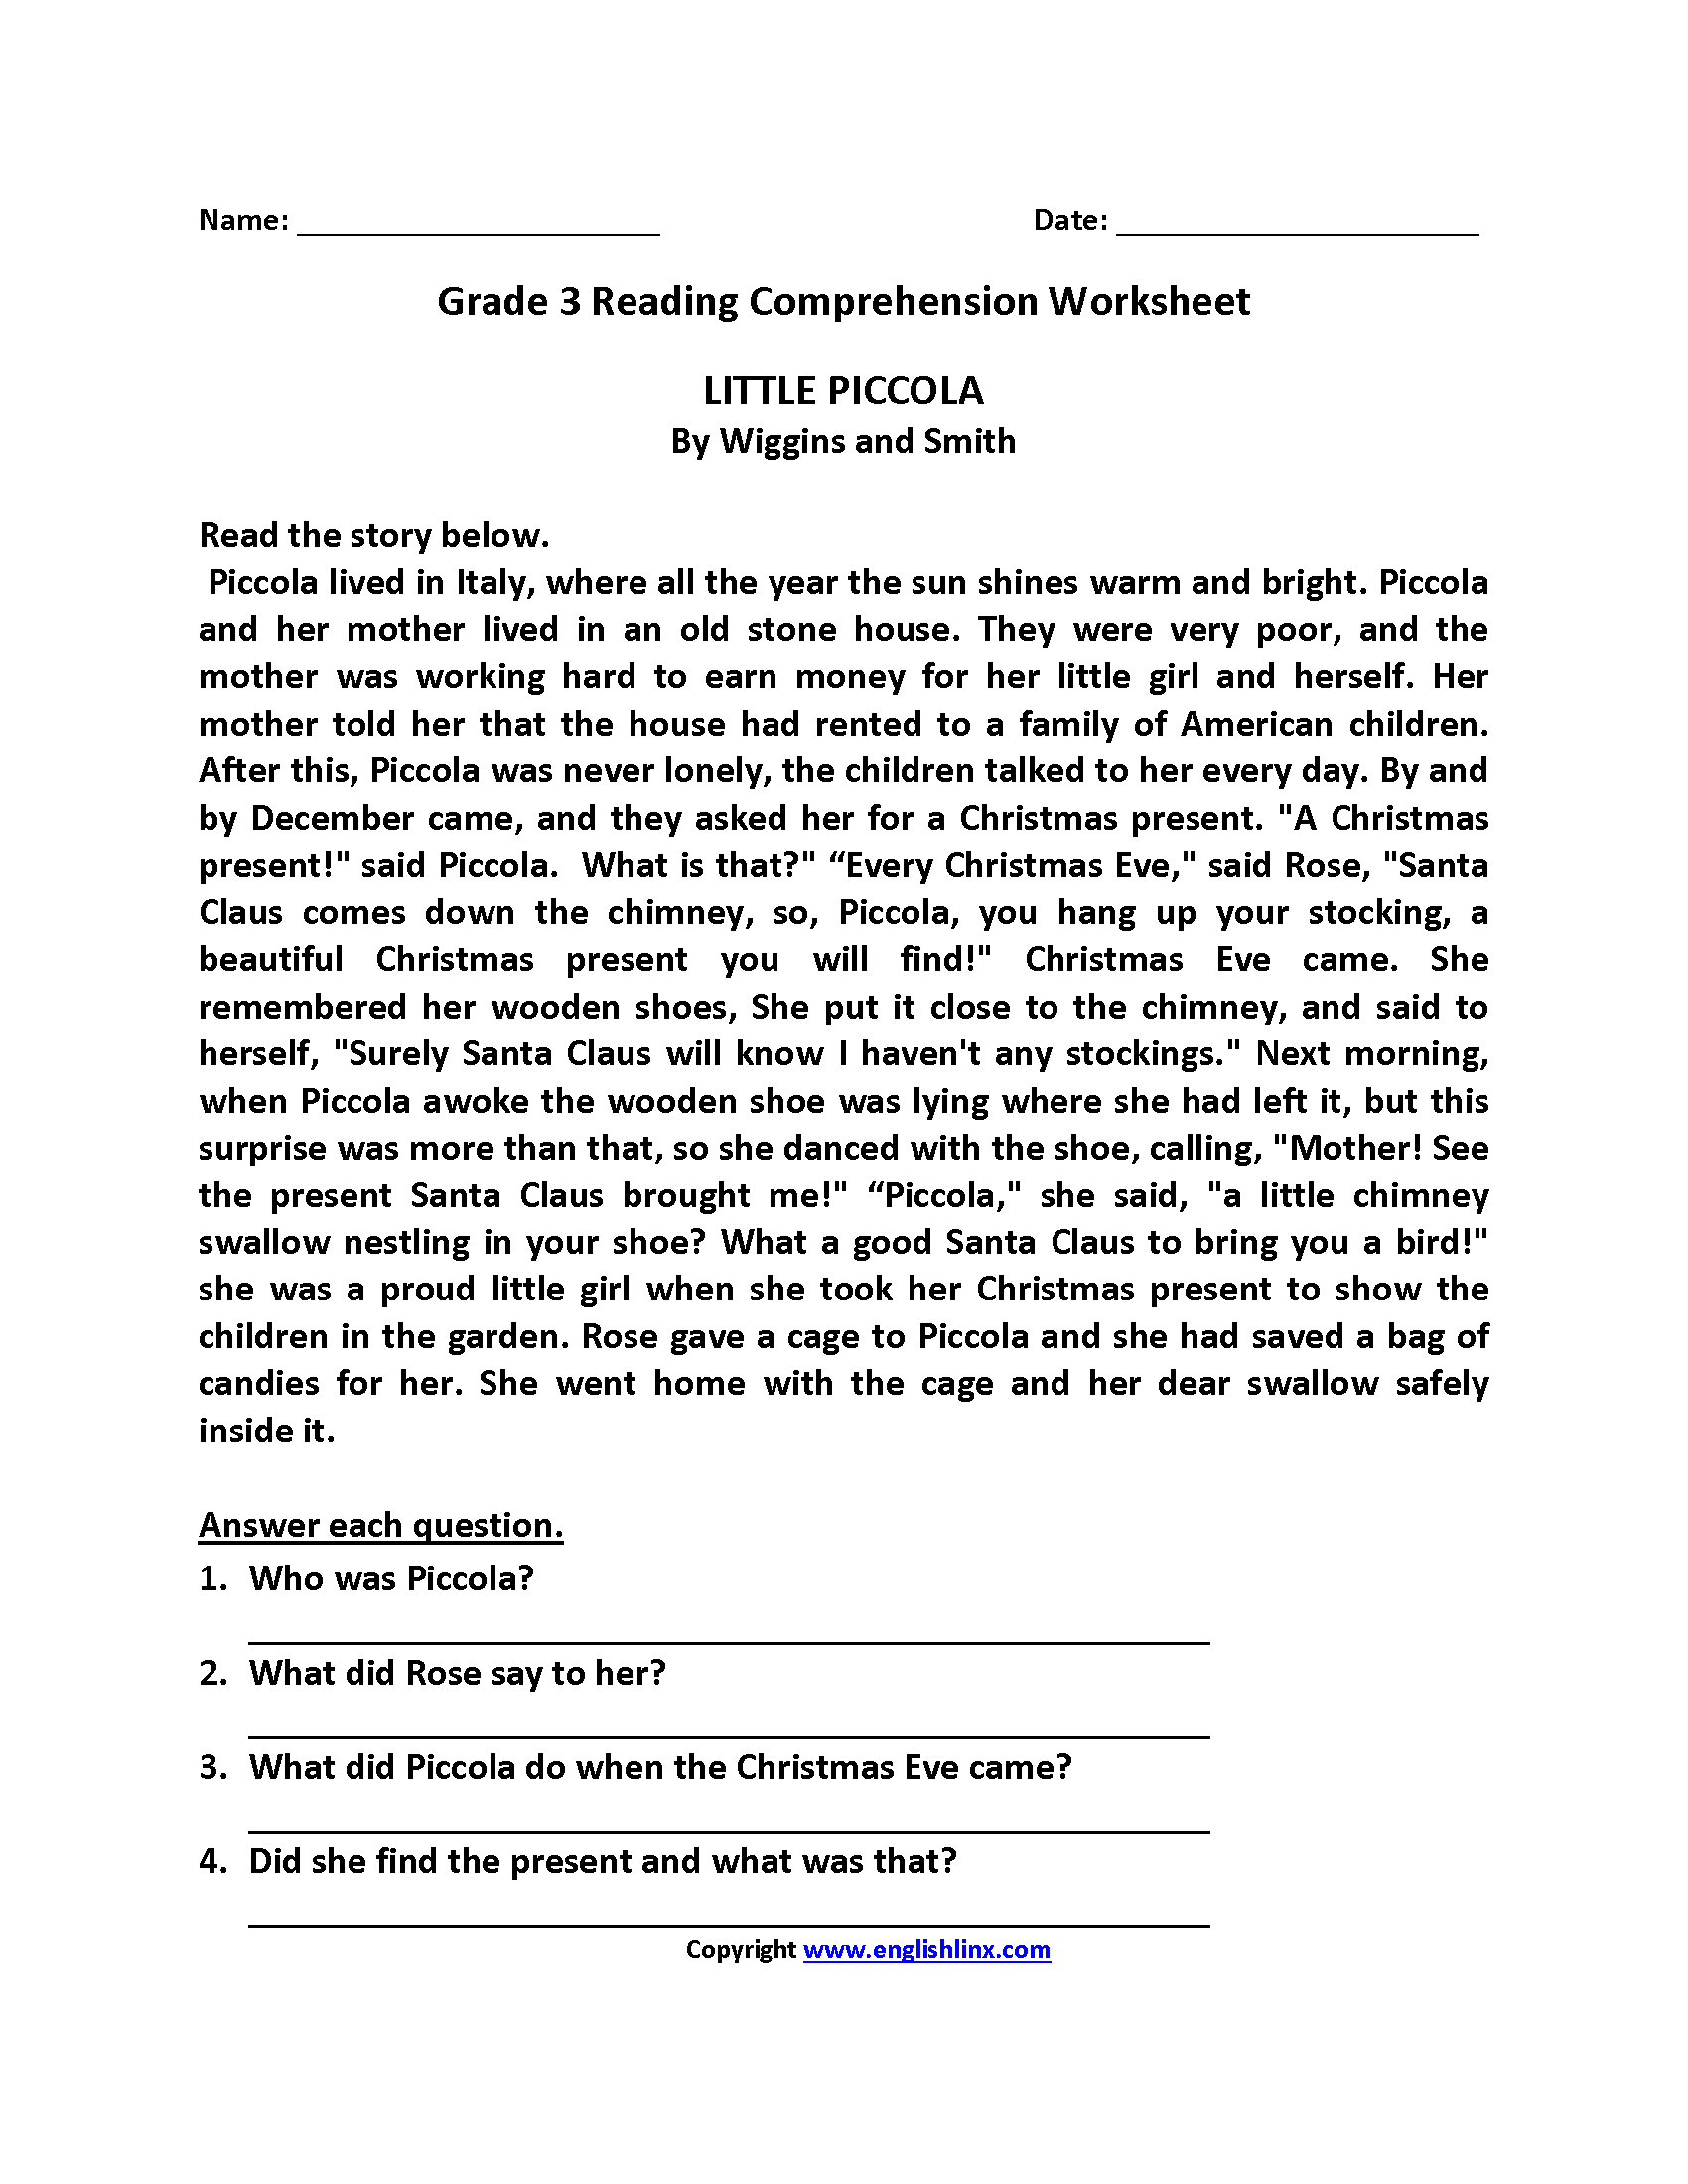 Reading Comprehension Worksheet 3rd Grade